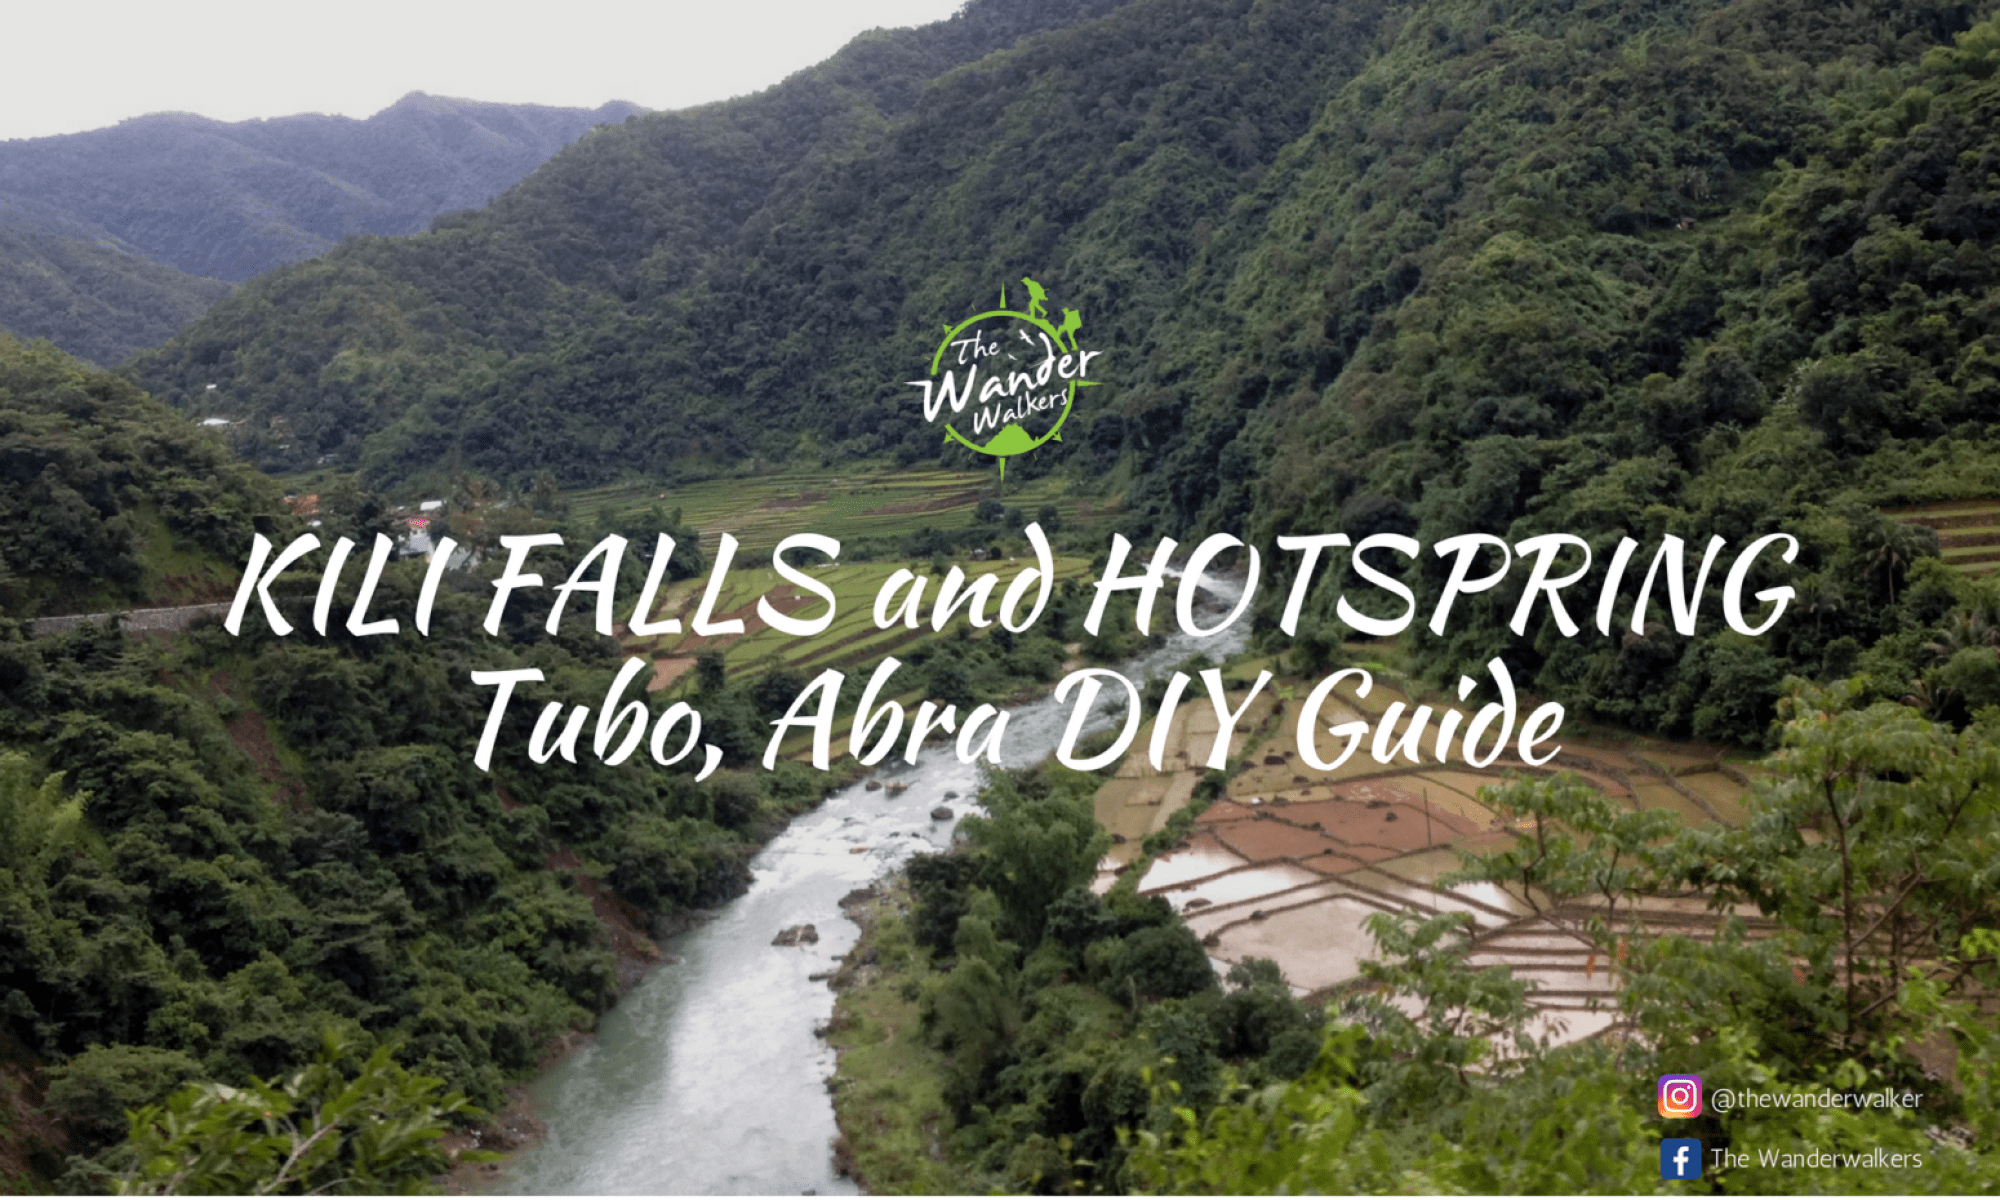 Kili Falls and Hotspring, Tubo Abra Complete DIY Guide